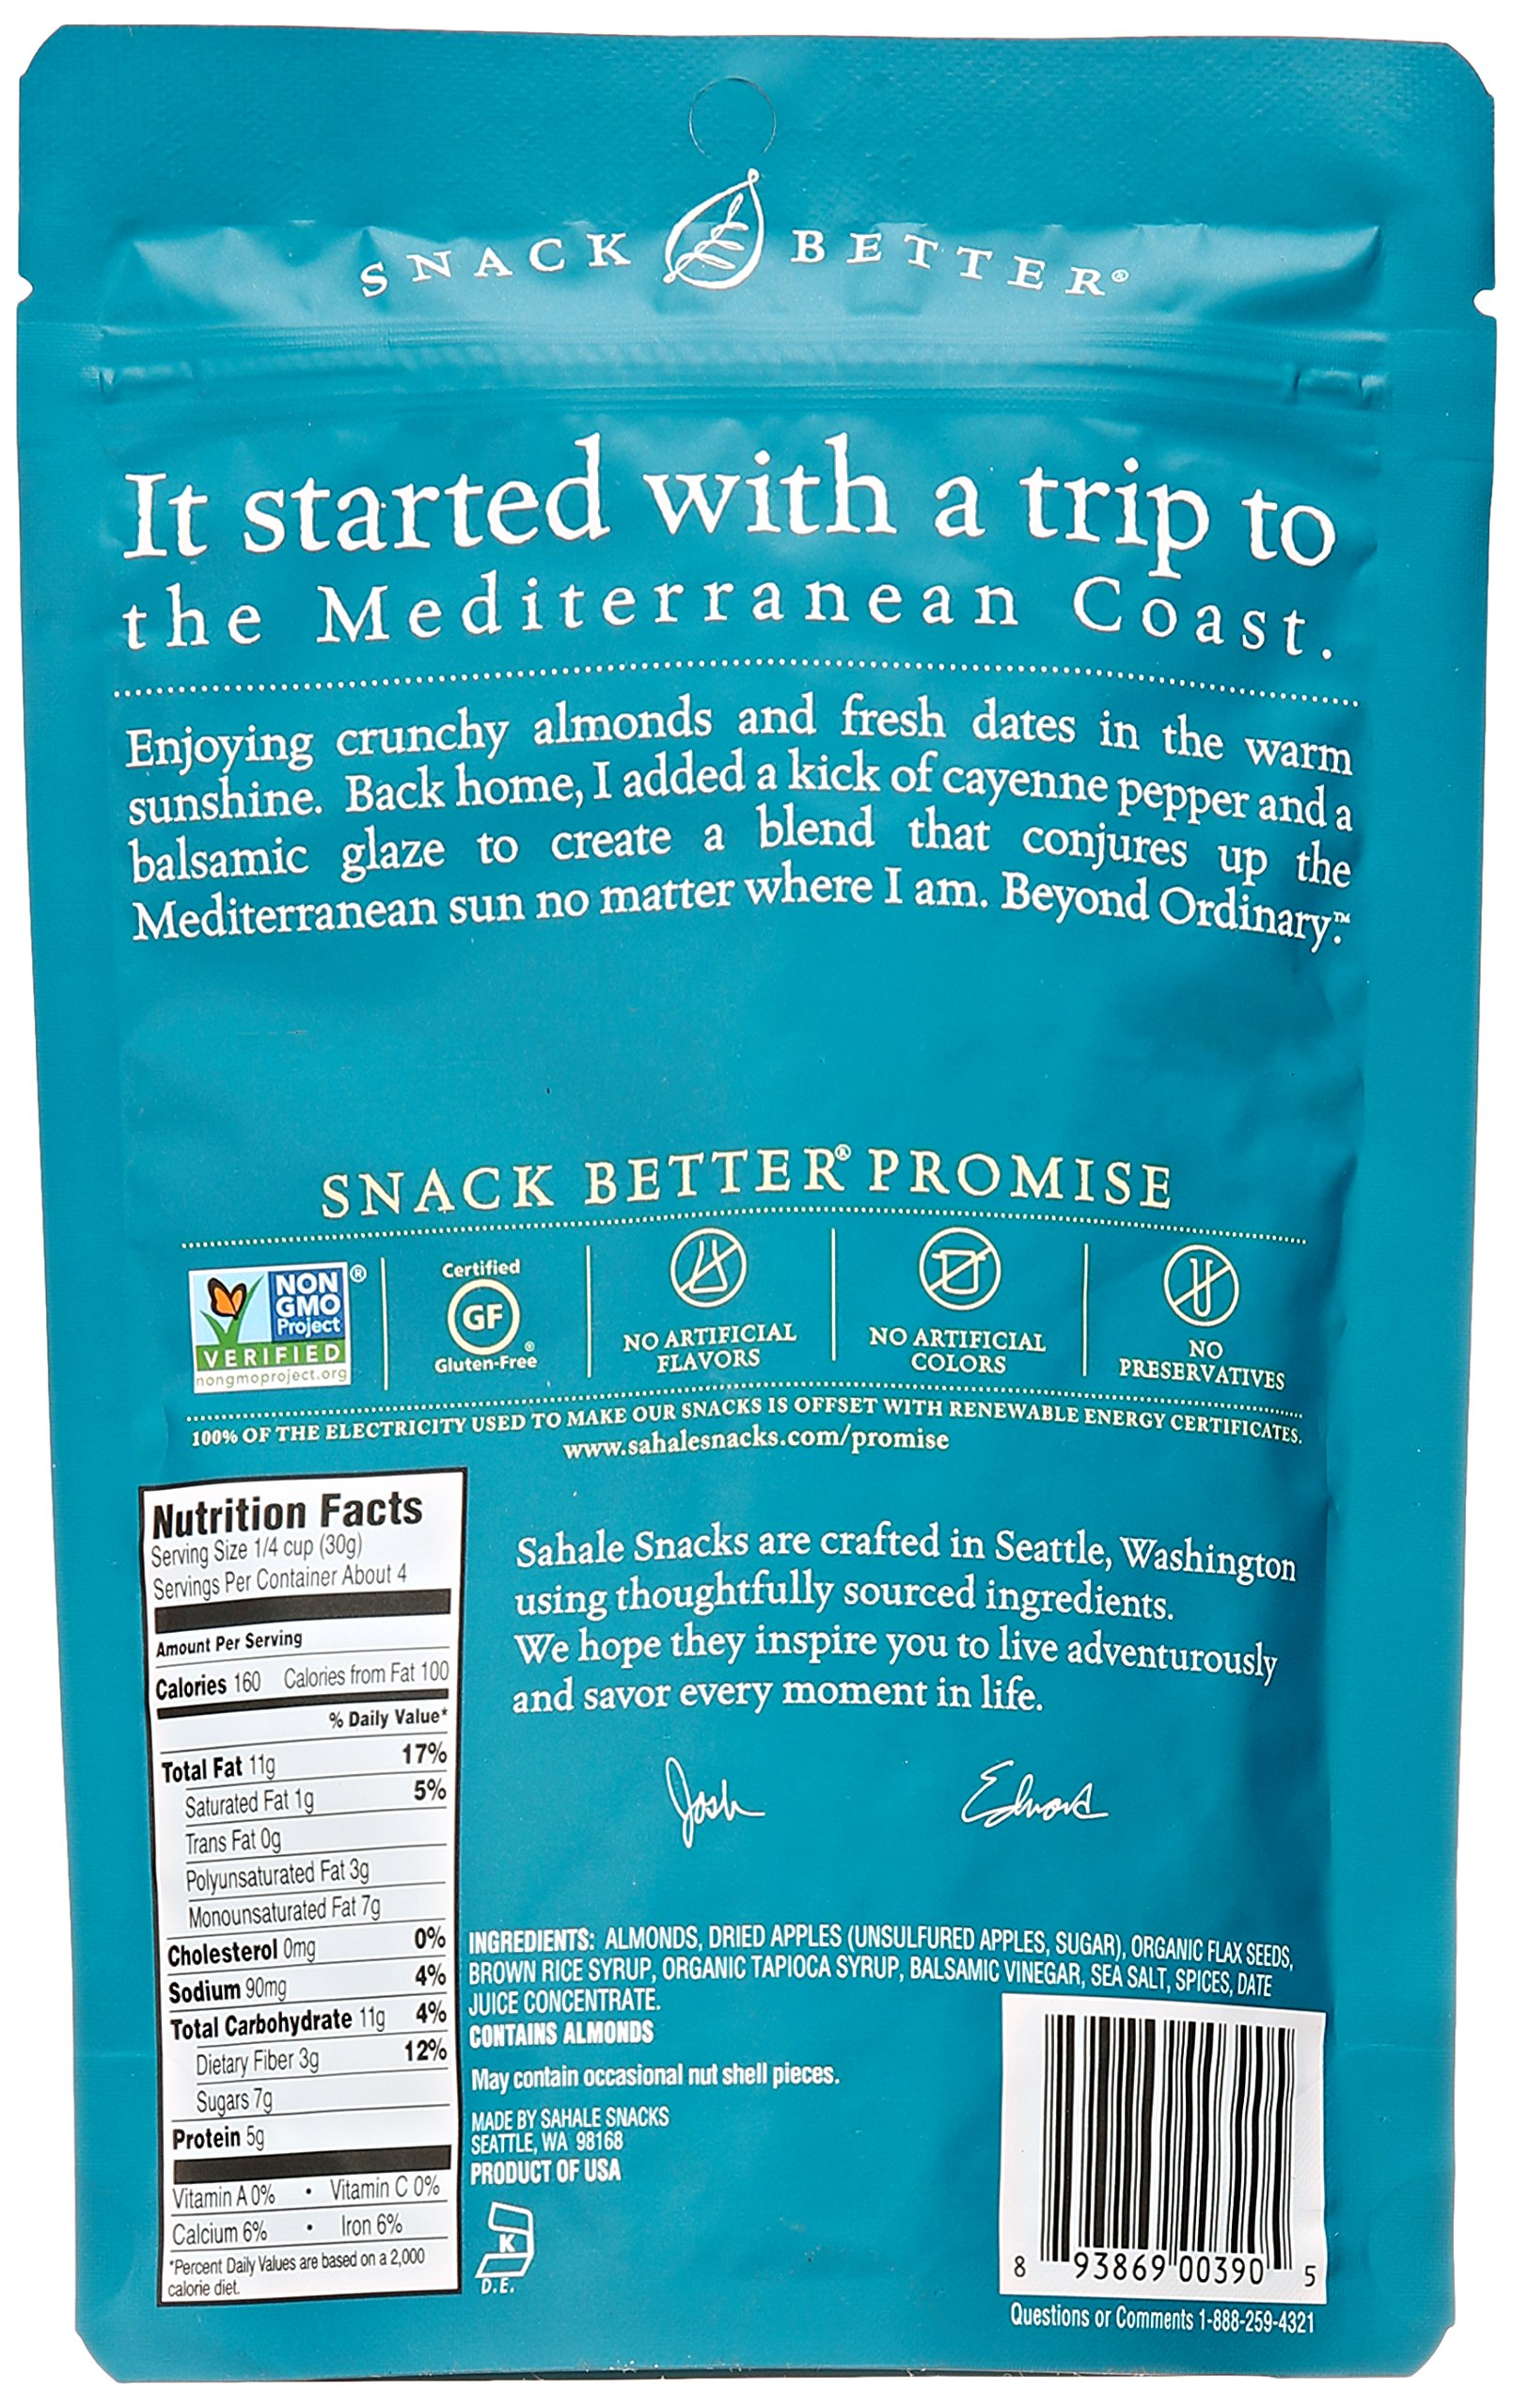 Sahale Snacks Balsamic Almonds Glazed Mix, 4 oz. - Nut Snacks in a Grab 'n Go Pouch, No Artificial Flavors, Preservatives or Colors, Gluten-Free Snacks 4 BETTER EVERYDAY SNACKING - When you're on the go to your next adventure, finding the perfect snack can be difficult. But with Sahale balsamic almonds glazed nuts snacks, you'll always have a delicious and wholesome option to stay energized and satisfied. PERFECT BALANCE - These nut snacks feature the perfect blend of whole dry-roasted almonds, dried apples, flax seeds, a pinch of cayenne pepper and it's all finished with a rich, subtly tart balsamic glaze. RESEALABLE POUCH -  The nut mix snacks are in a resealable pouch that helps keep them fresh, so you can enjoy a delicious nut mix in your home, office and more.